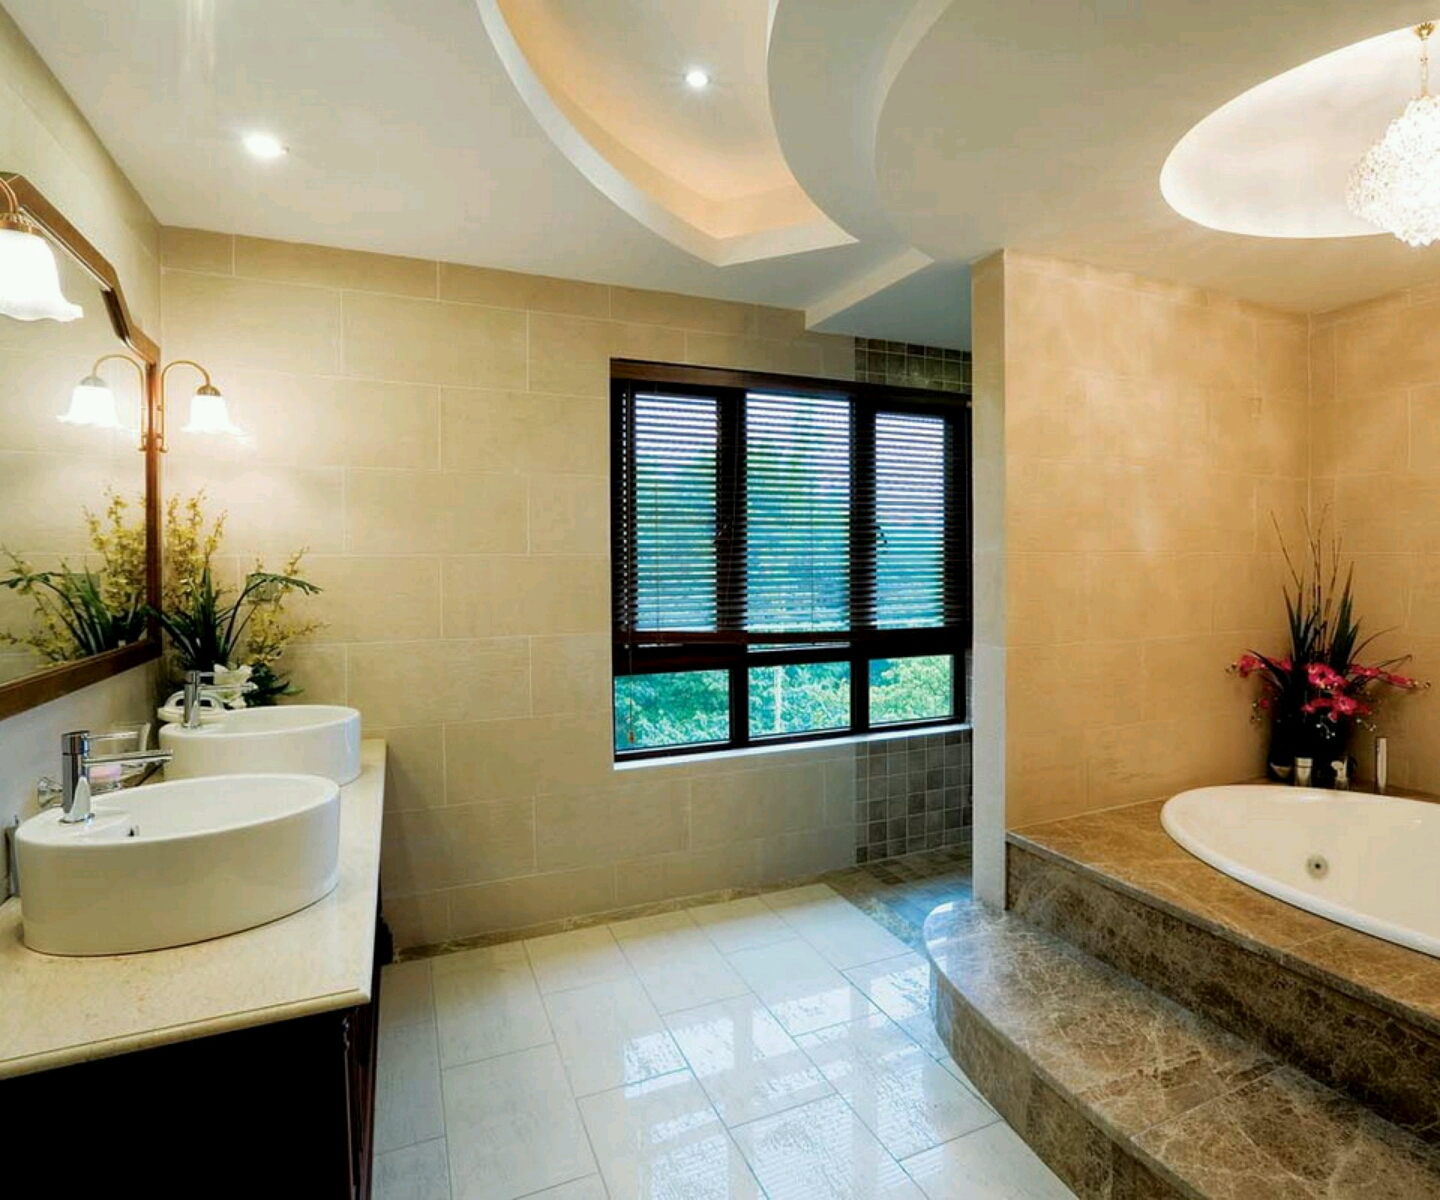 New home designs latest ultra modern washroom designs ideas for Washroom decoration ideas